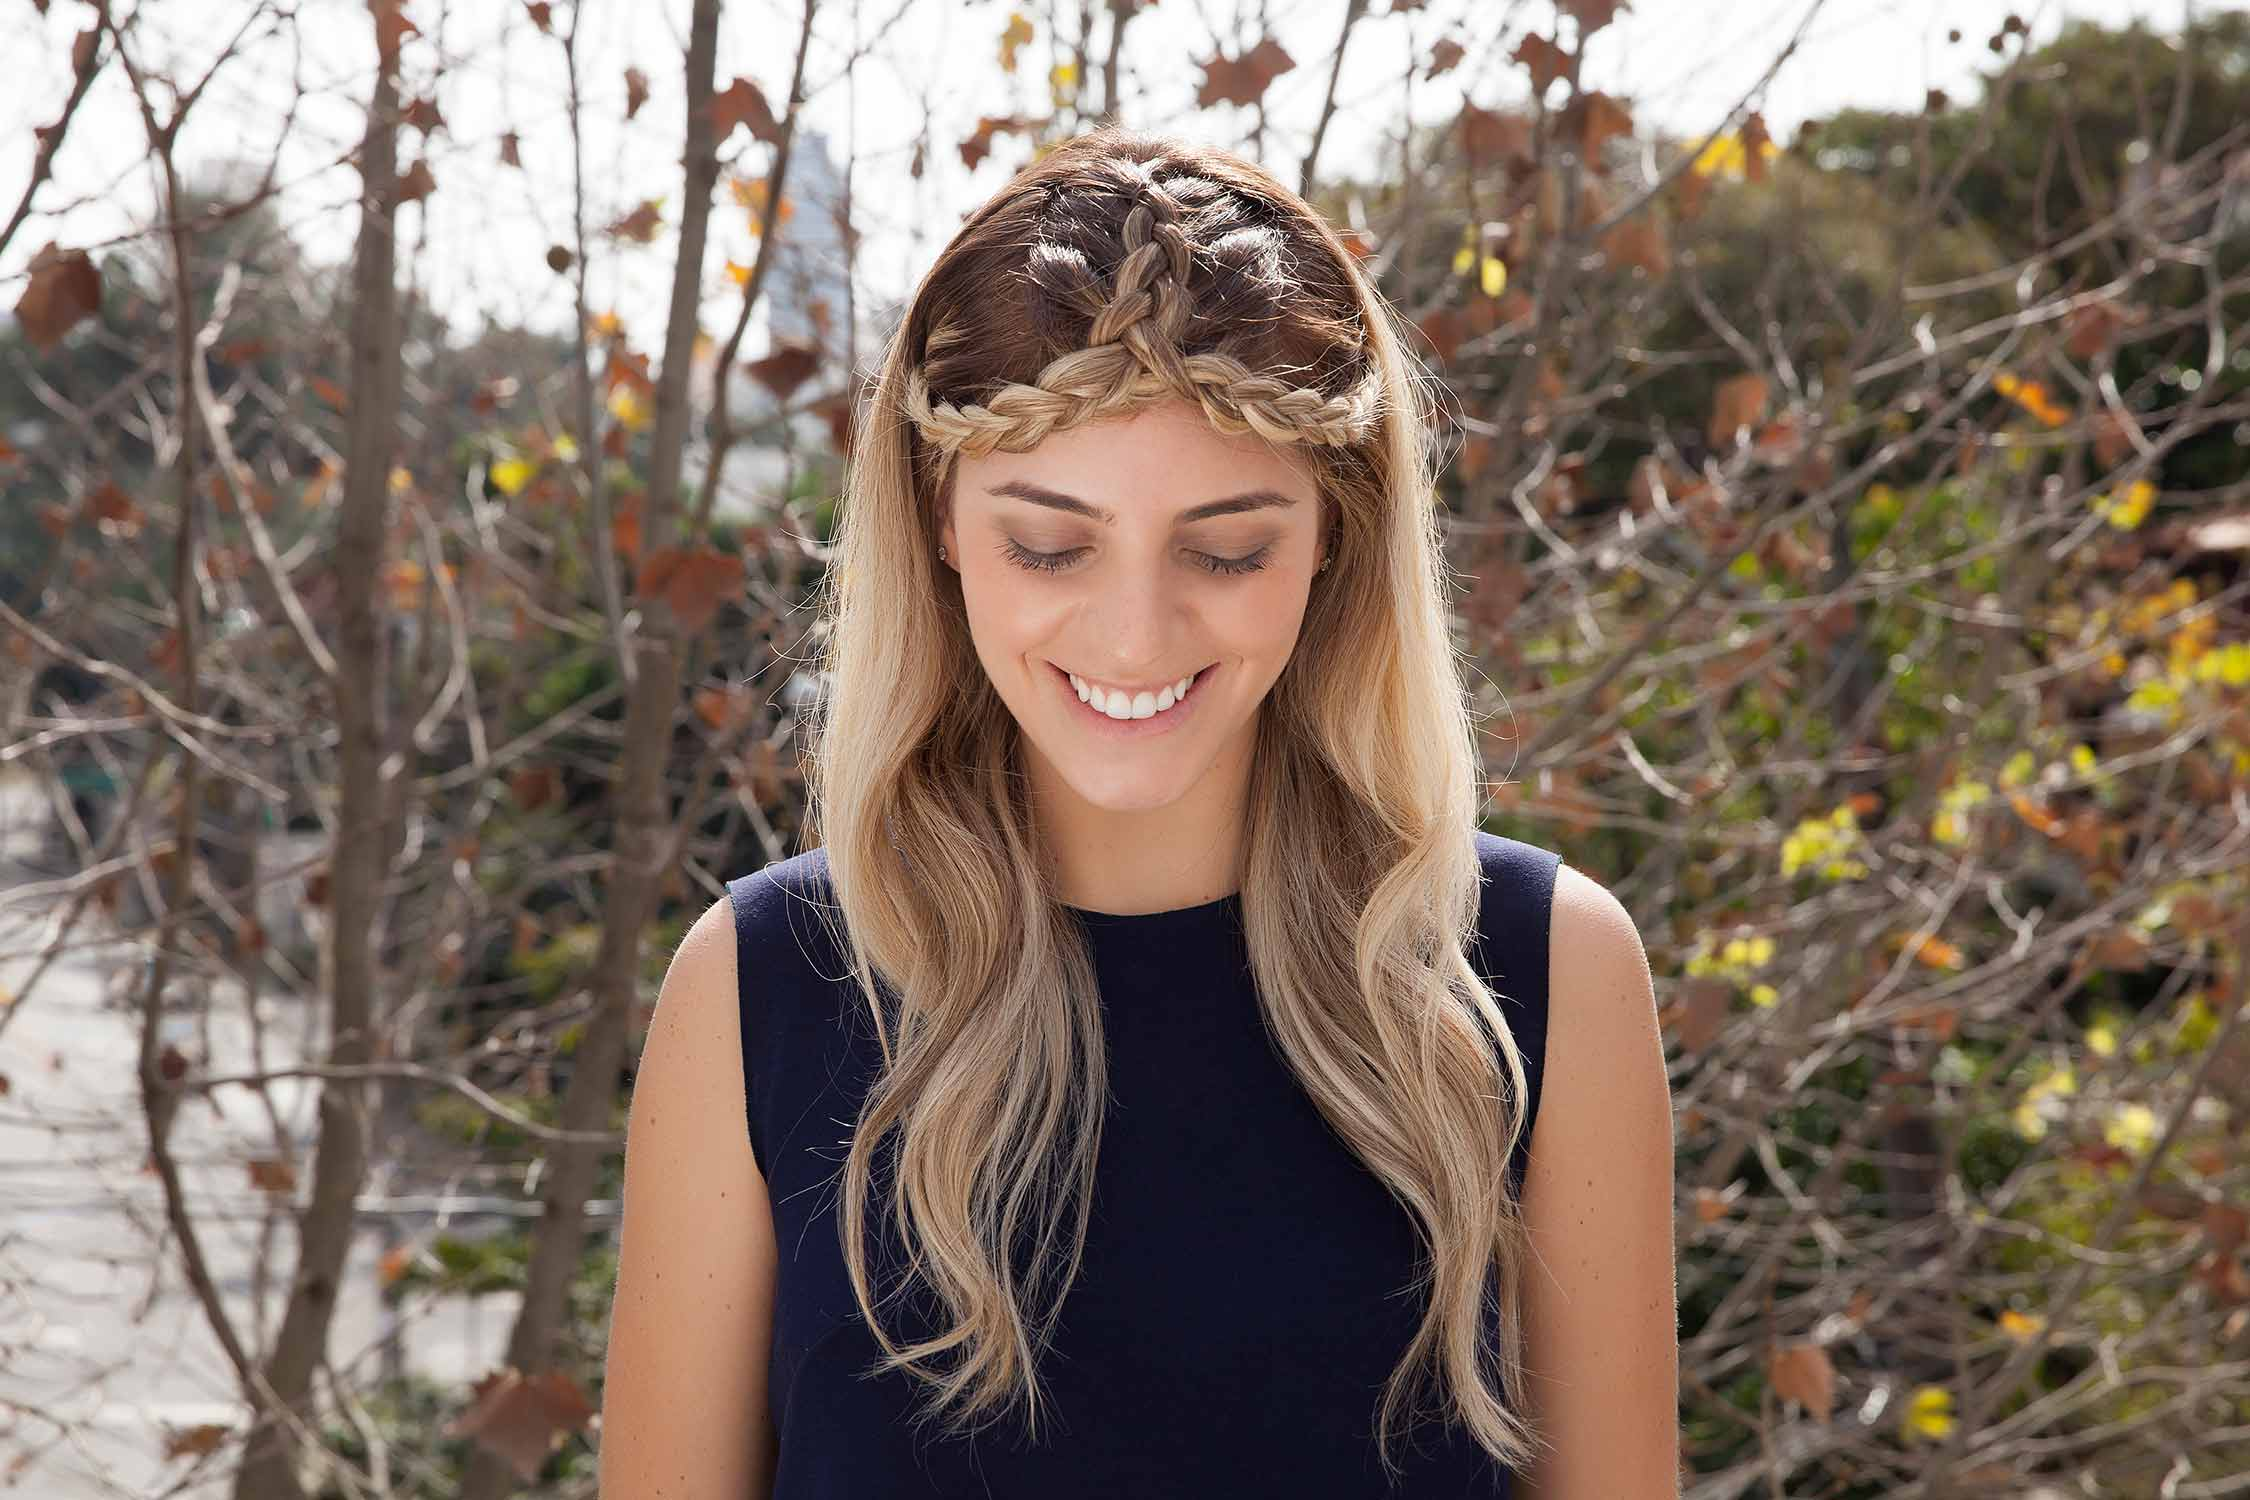 Halloween Hairstyles: 12 Clever Looks You Can D.I.Y. in Minutes